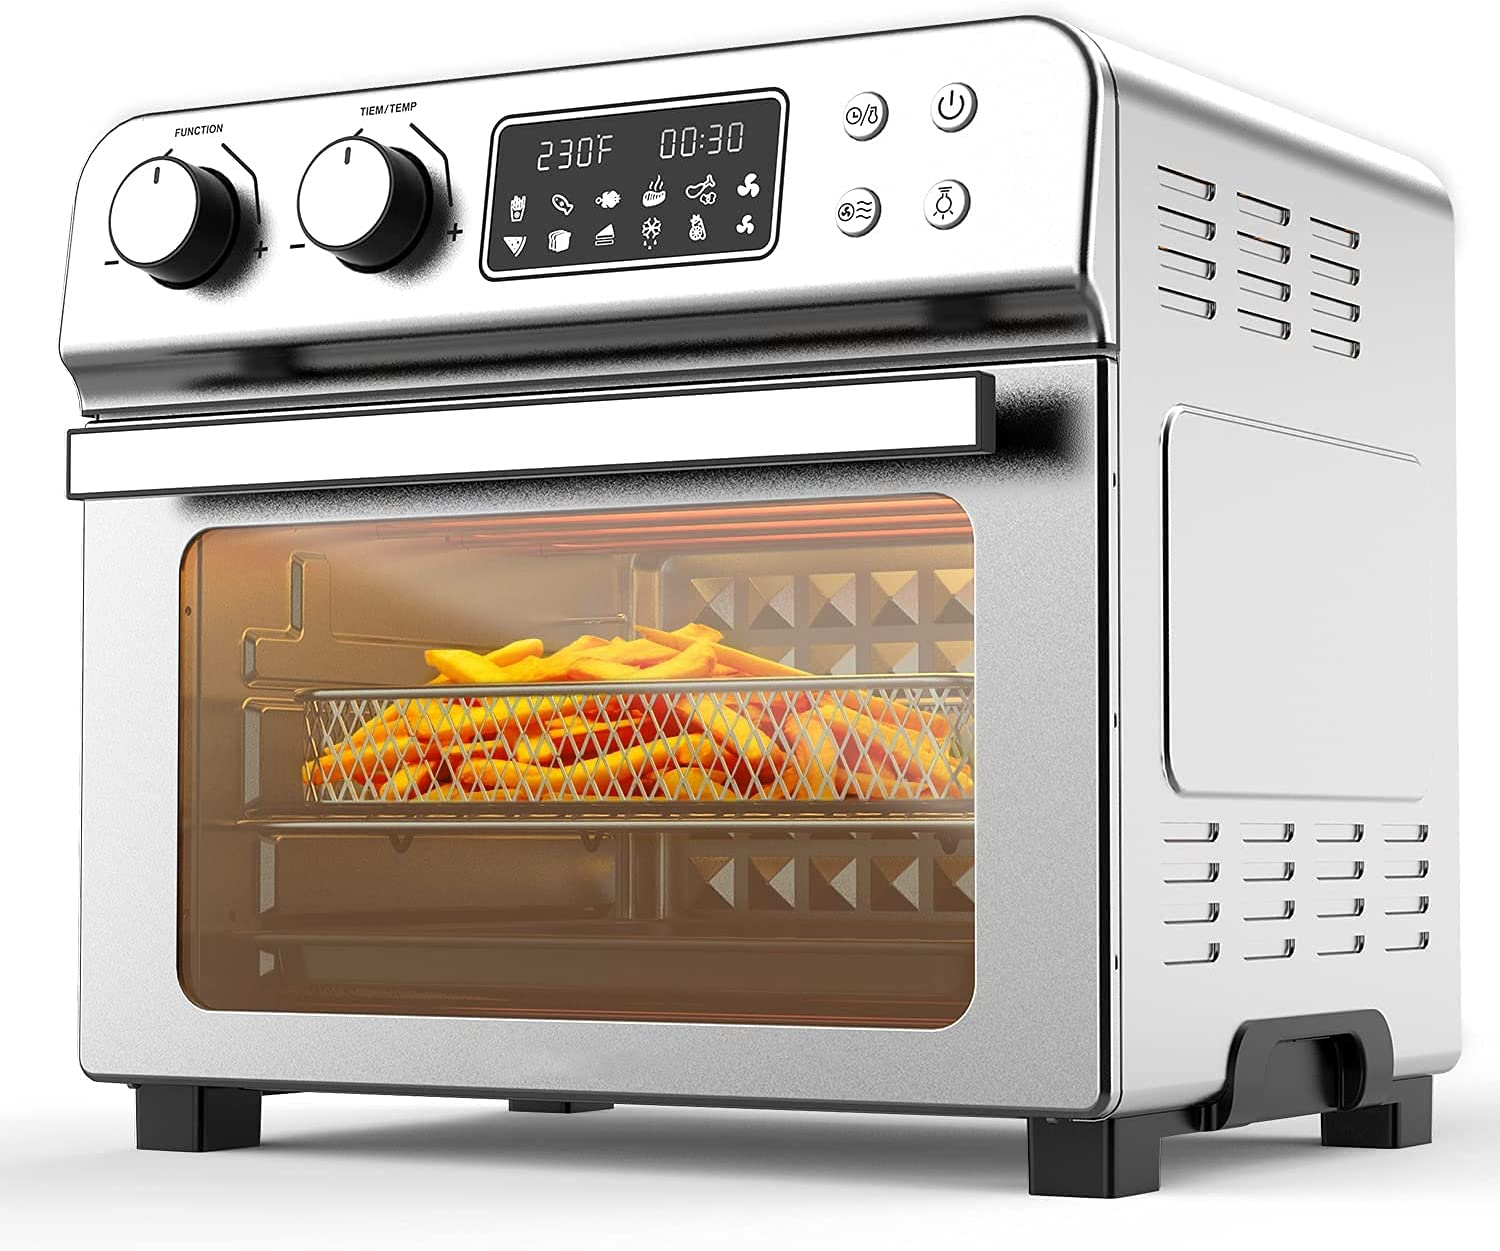 Air Fry Oven 1700 W Large Classic Toa Convection Ranking TOP14 and Digital Countertop